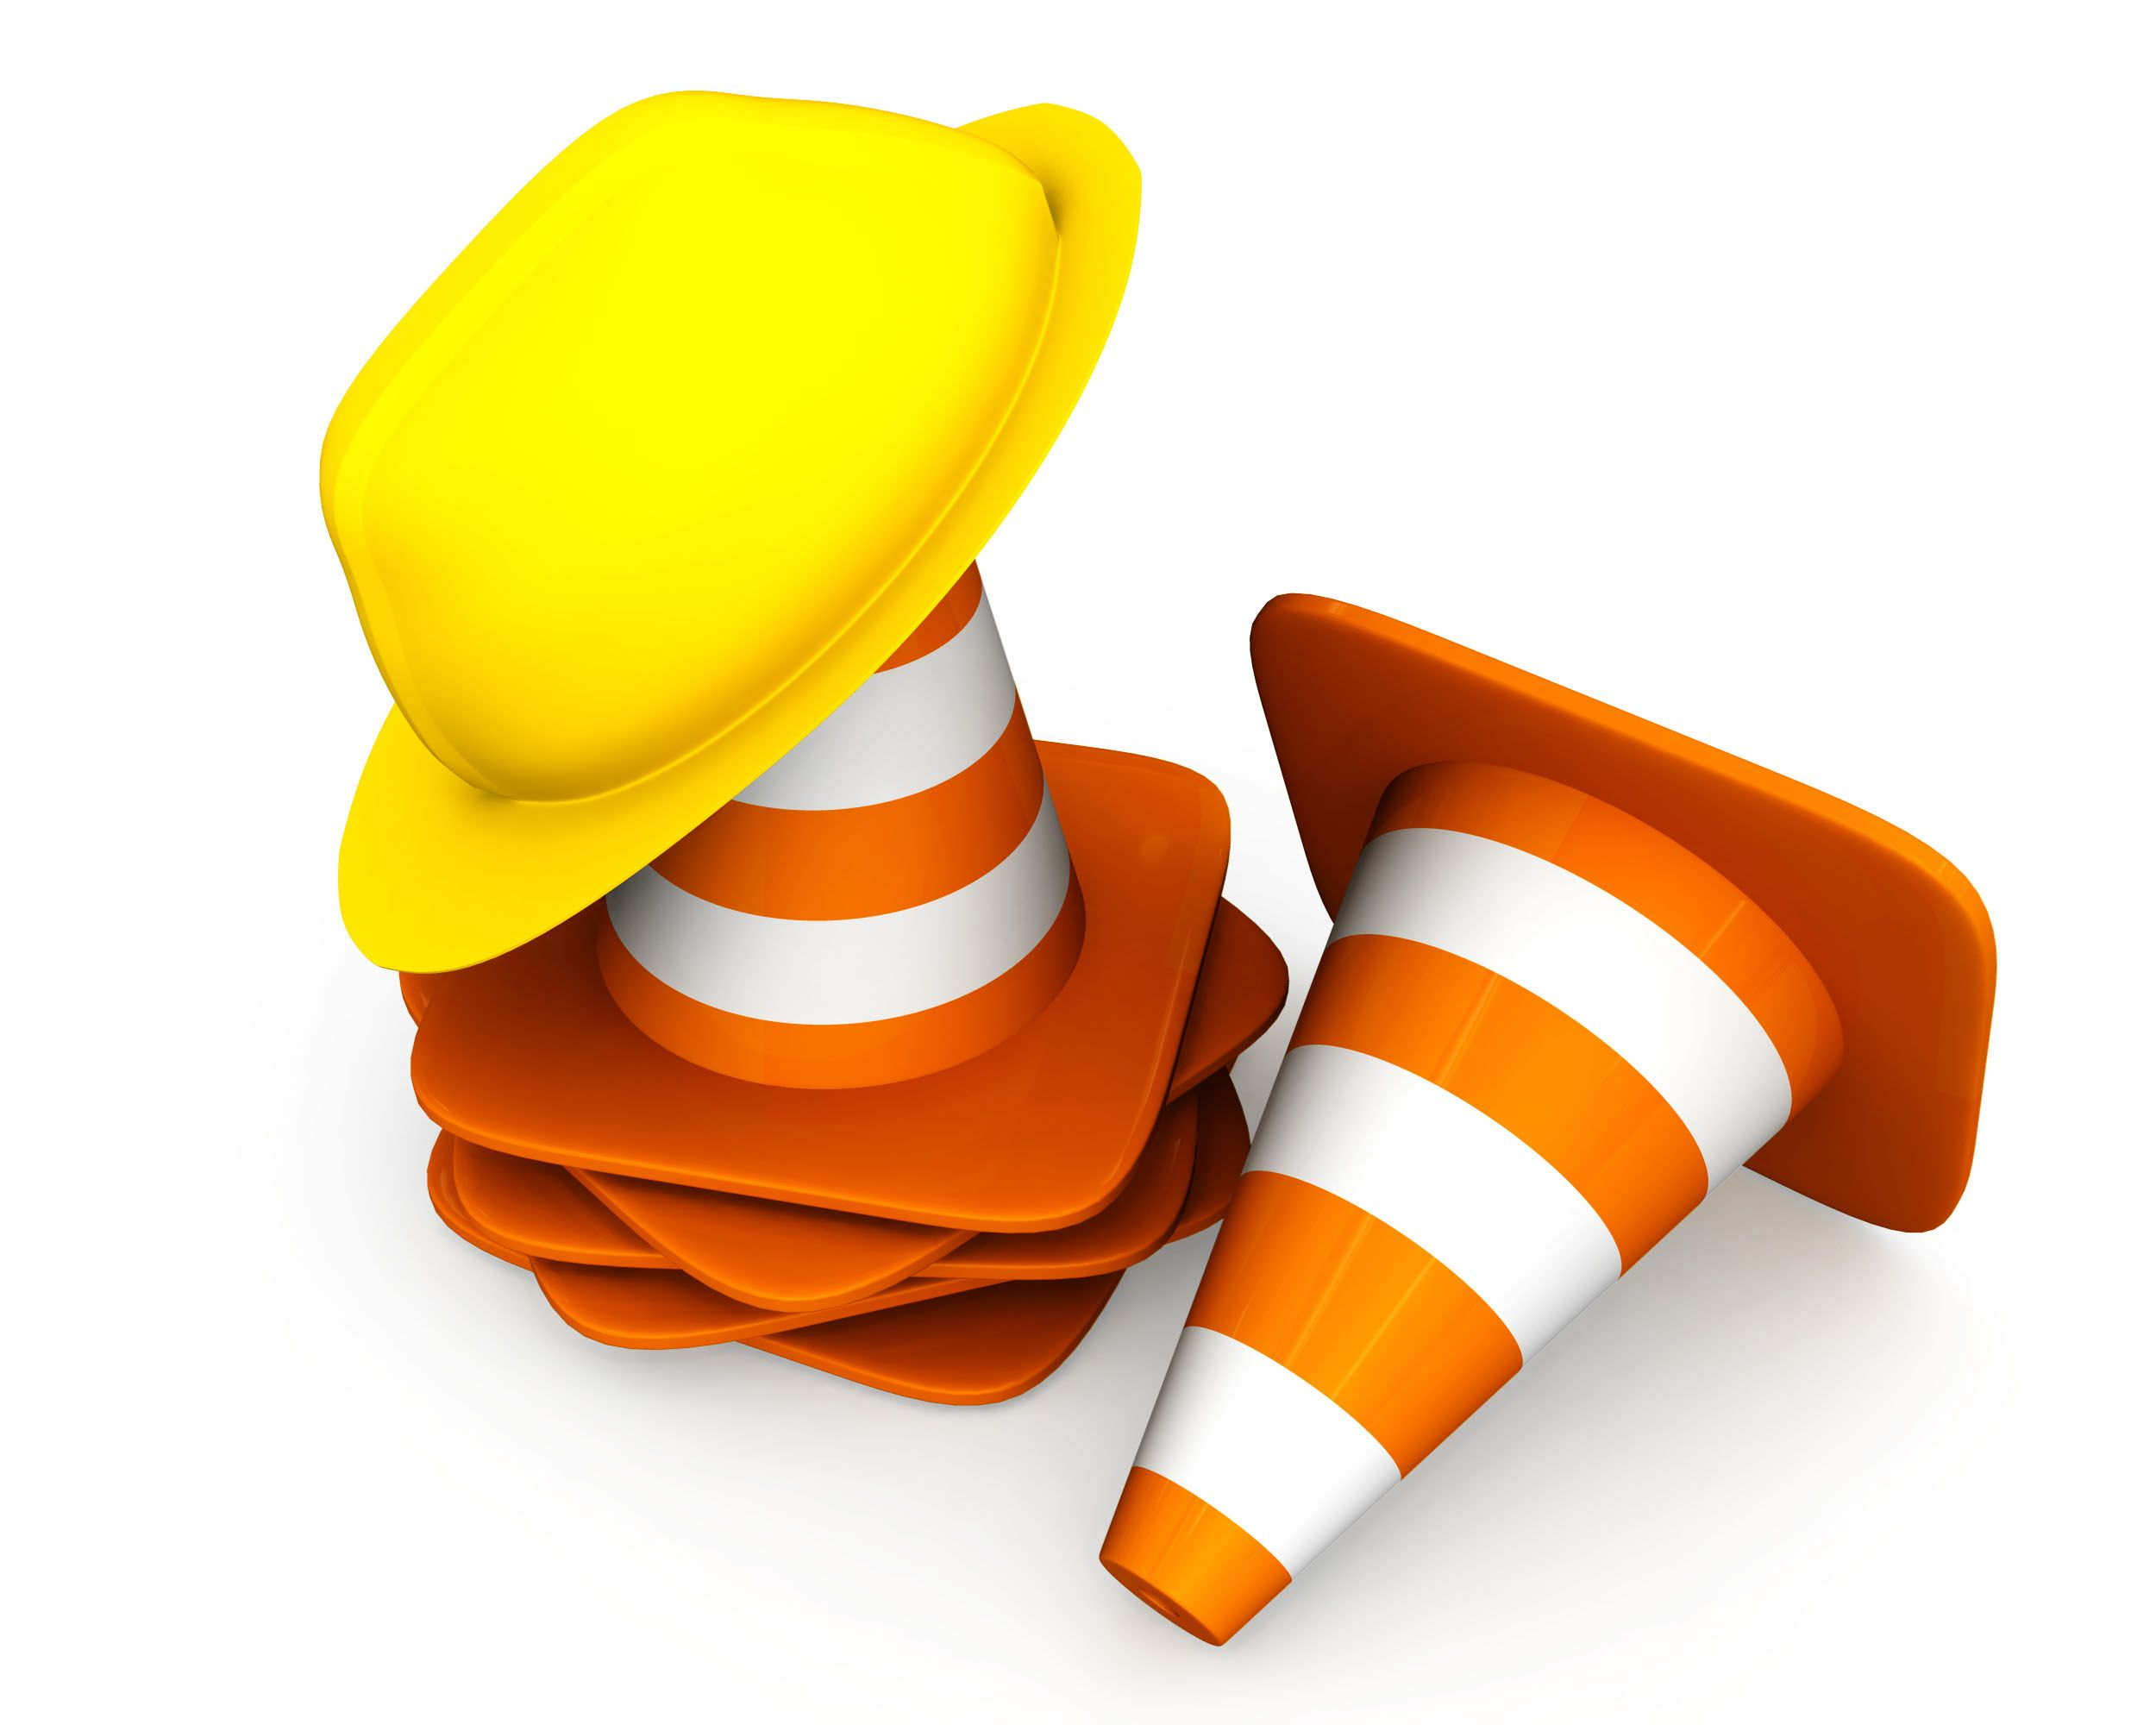 1114 Traffic Cones With Helmet For Road Safety Stock Photo